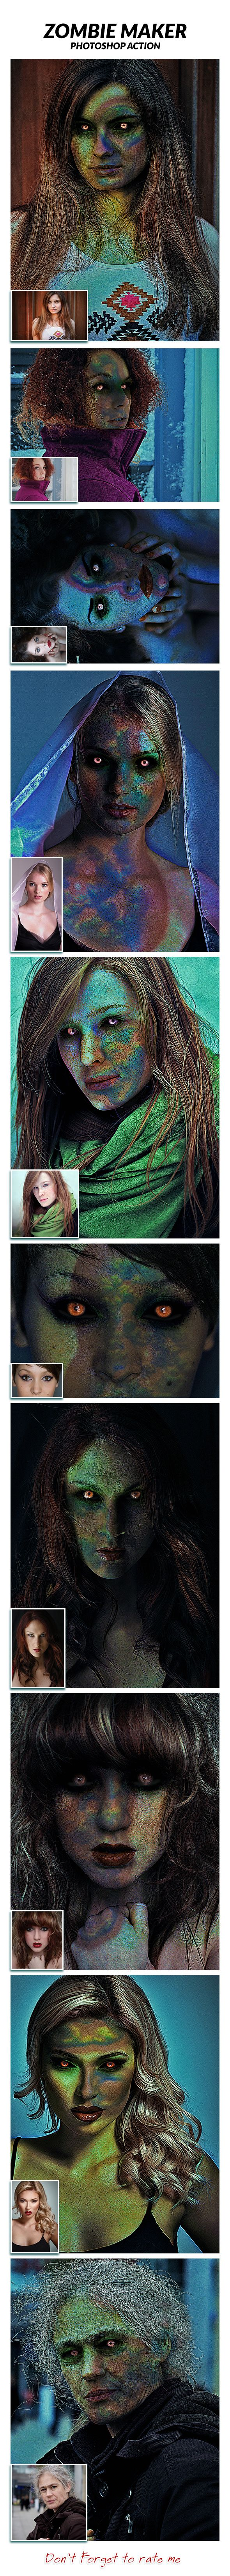 Zombie Maker — Photoshop Action #Halloween action #fear • Download ➝ https://graphicriver.net/item/zombie-maker-photoshop-action/15549452?ref=pxcr